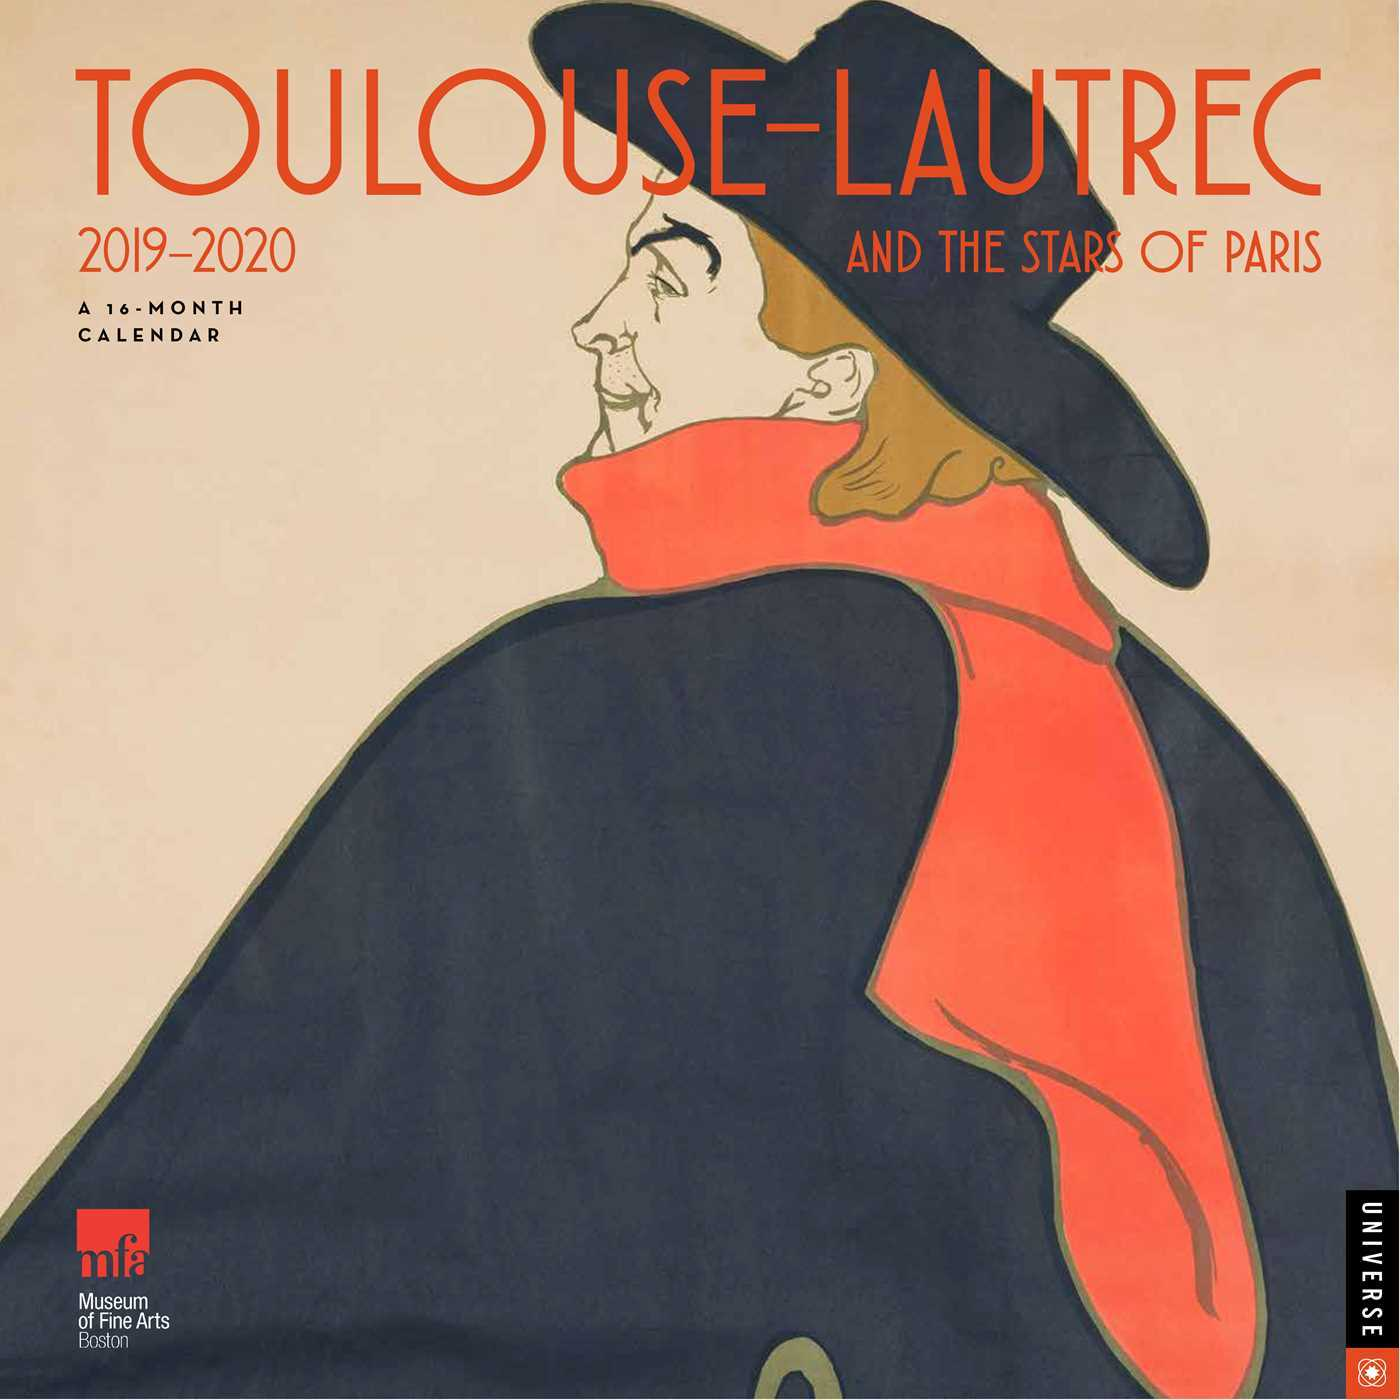 Toulouse-Lautrec and the Stars of Paris 2019-2020 16-Month Wall Calendar